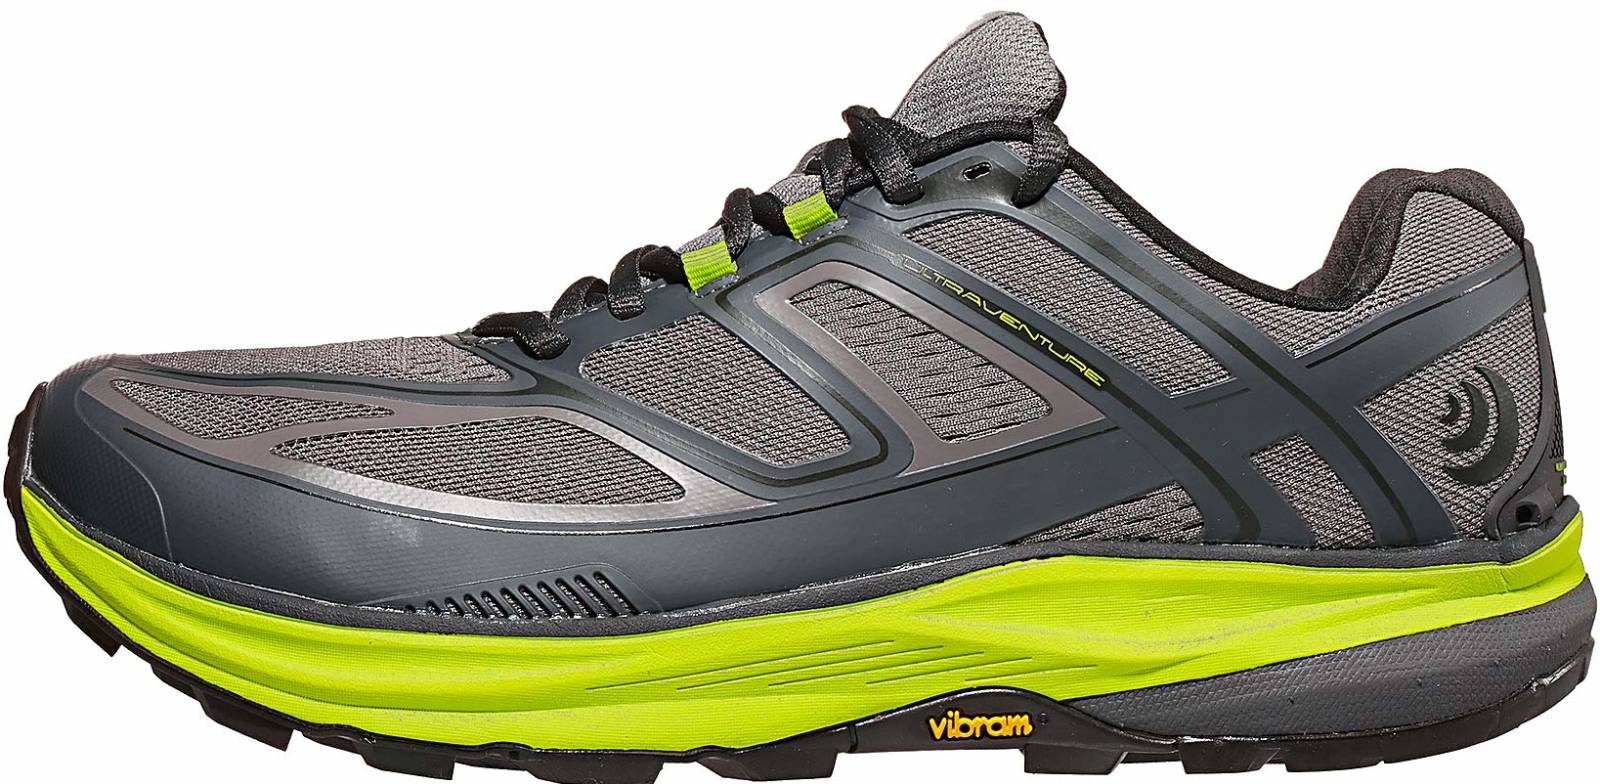 Review of Topo Athletic Ultraventure